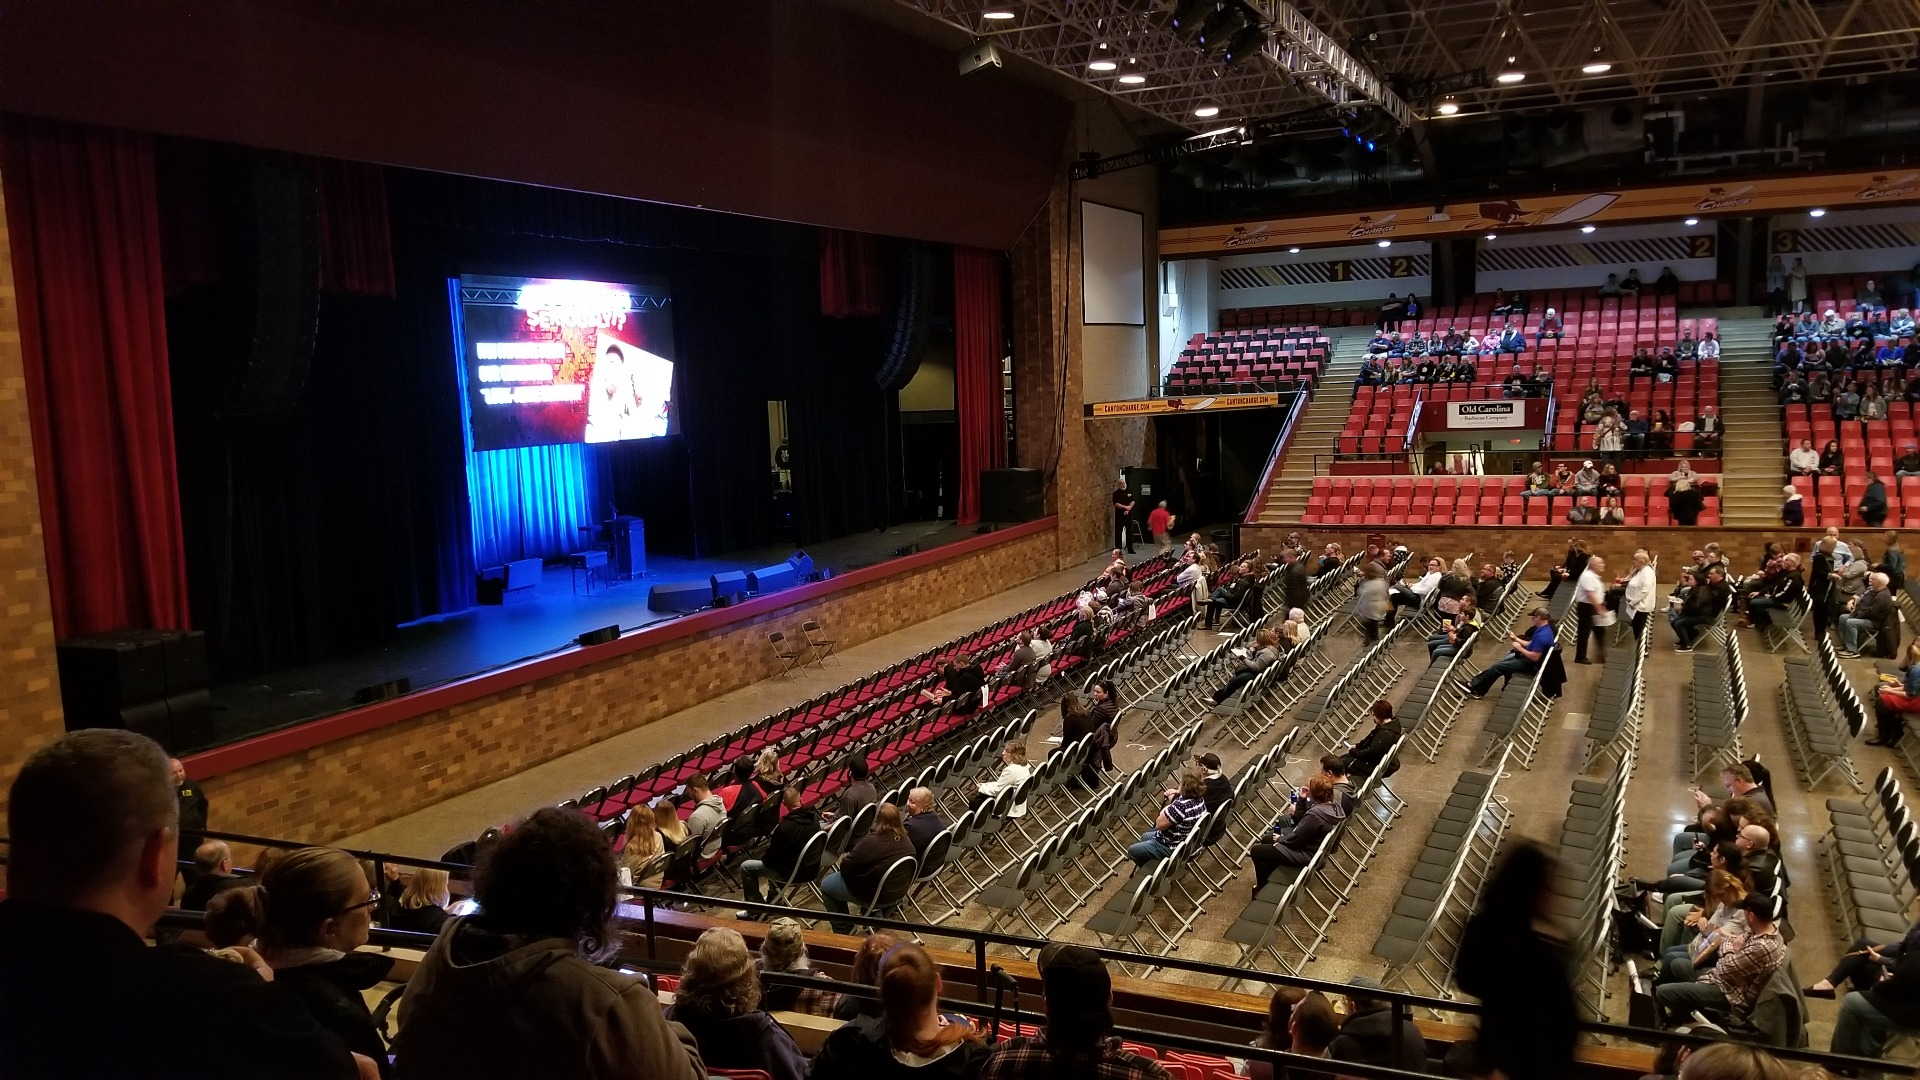 Canton Civic Center Section 16 Row L Seat 2